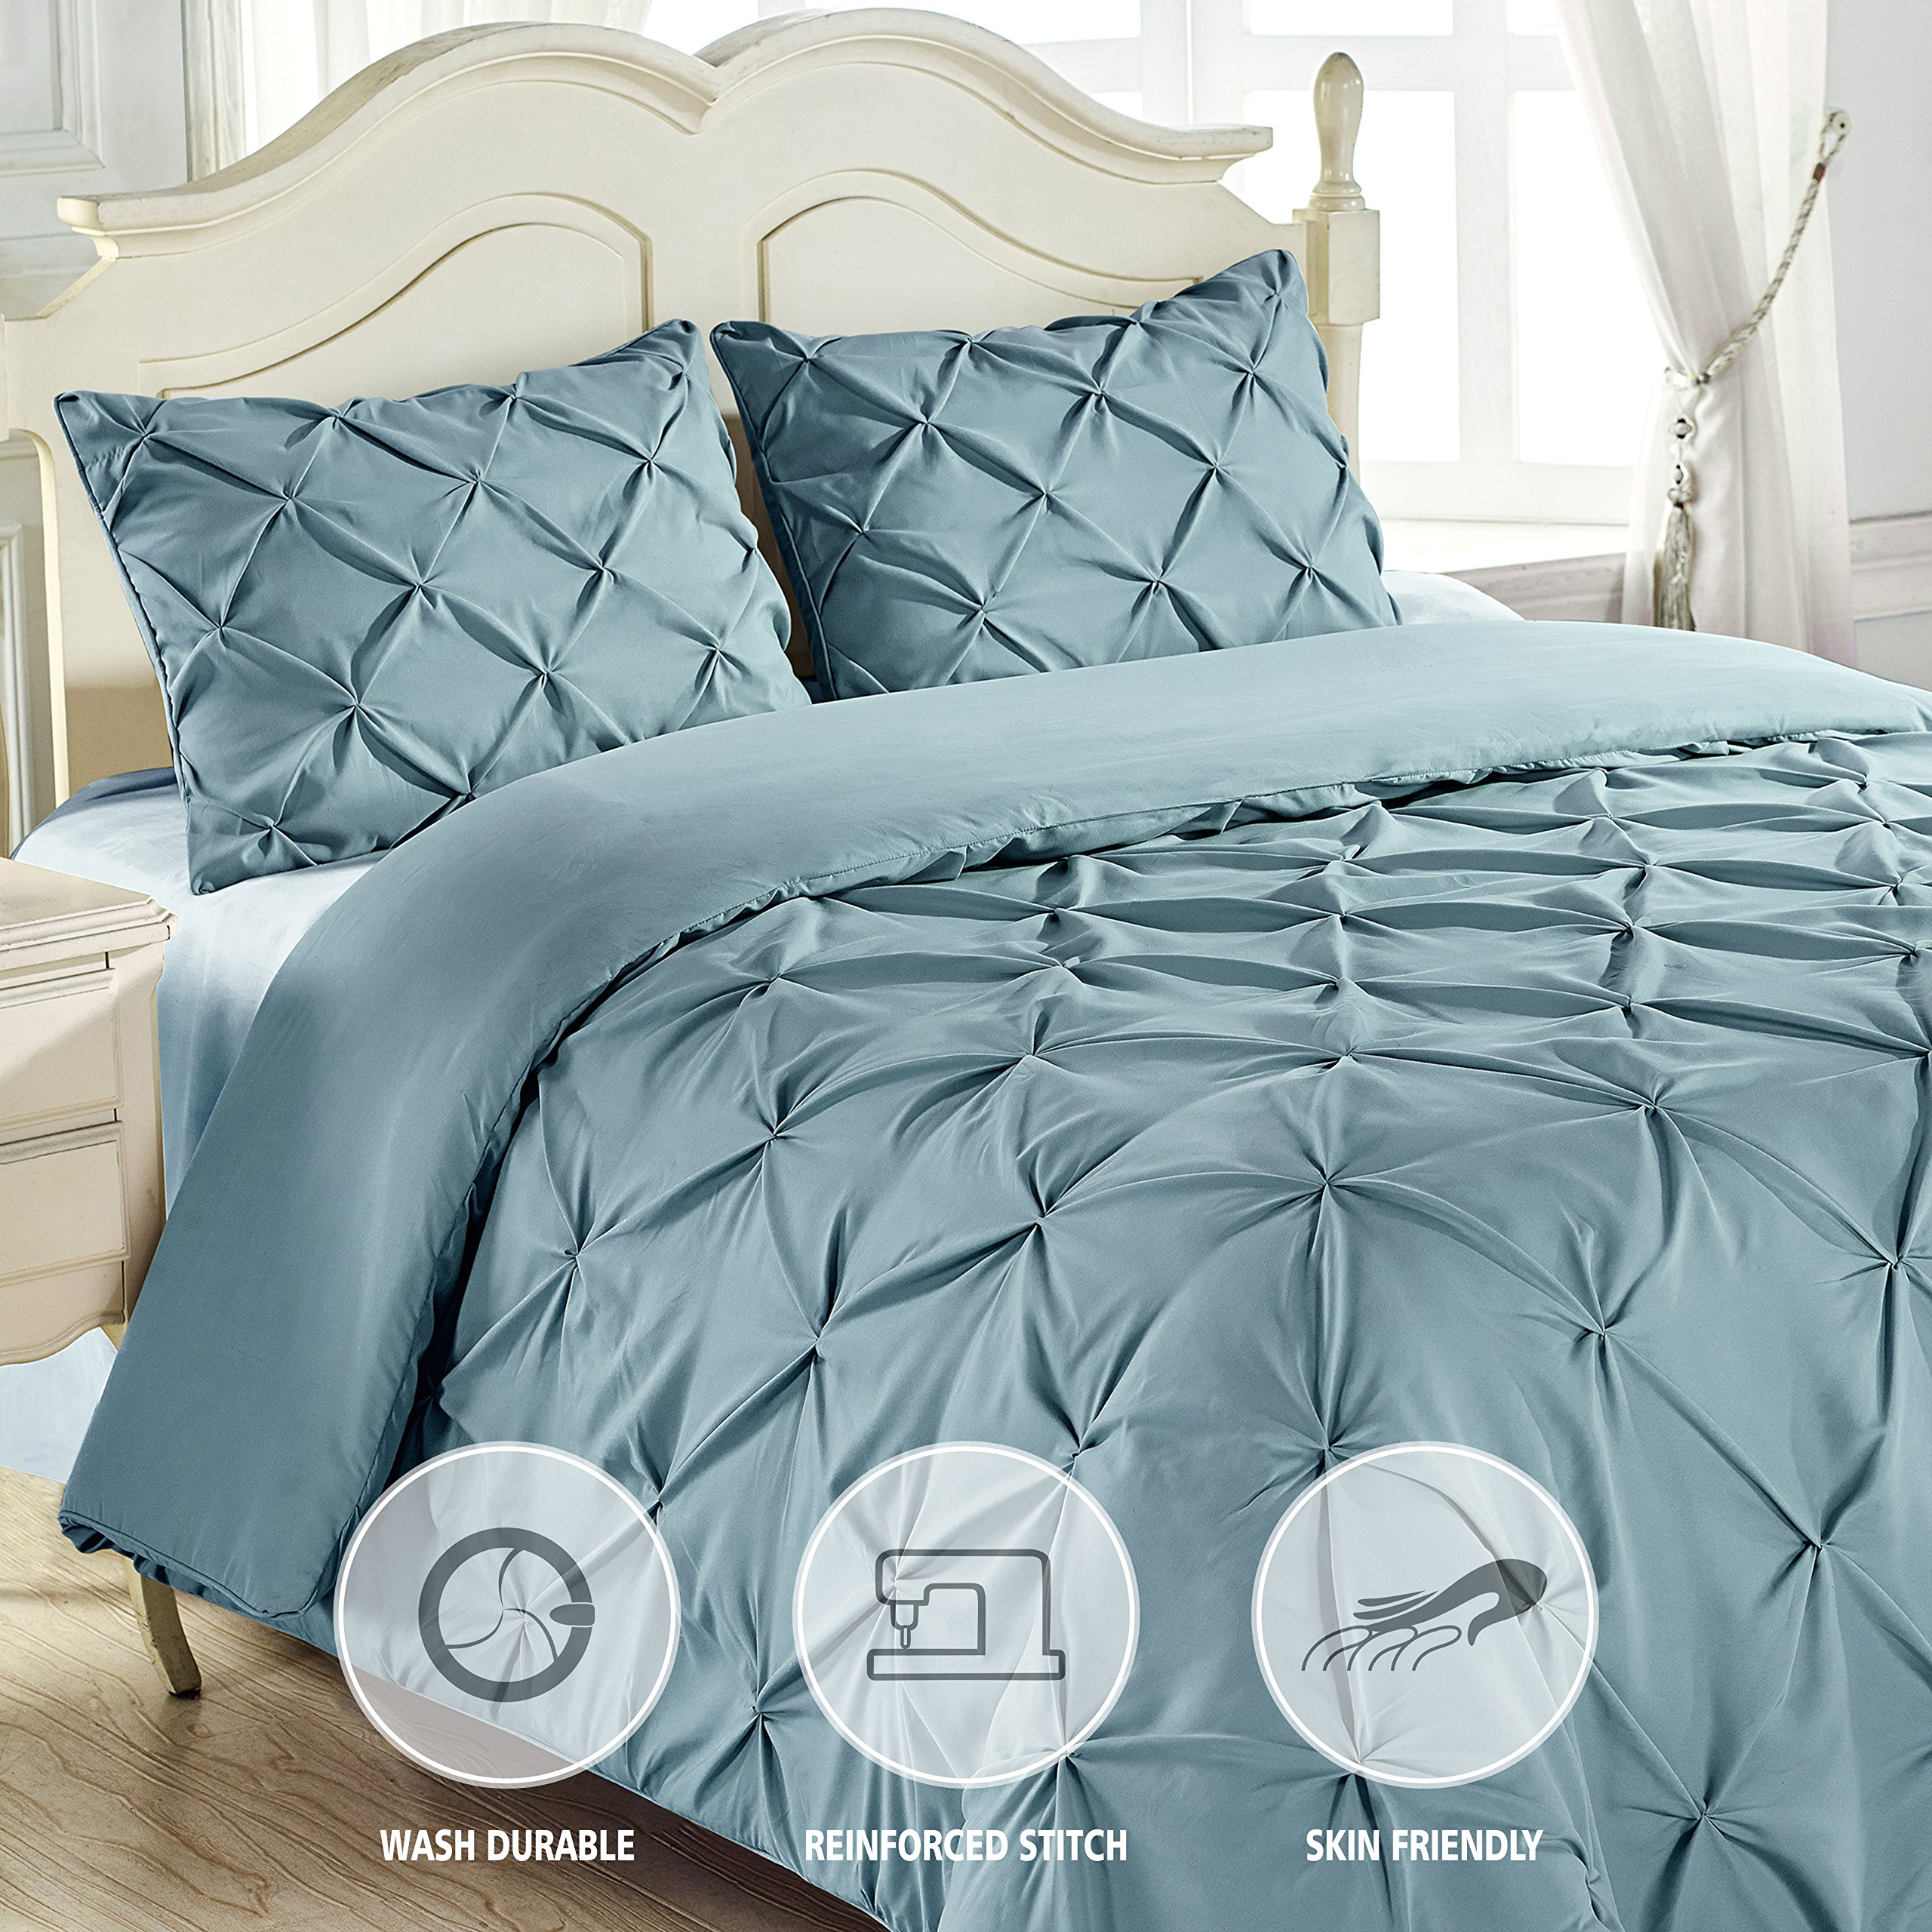 King & Queen Home Reinforced Double Stitch 3 Piece Pinch Pleat Comforter Set (Cali King, Spa Blue) by King & Queen Home (Image #3)